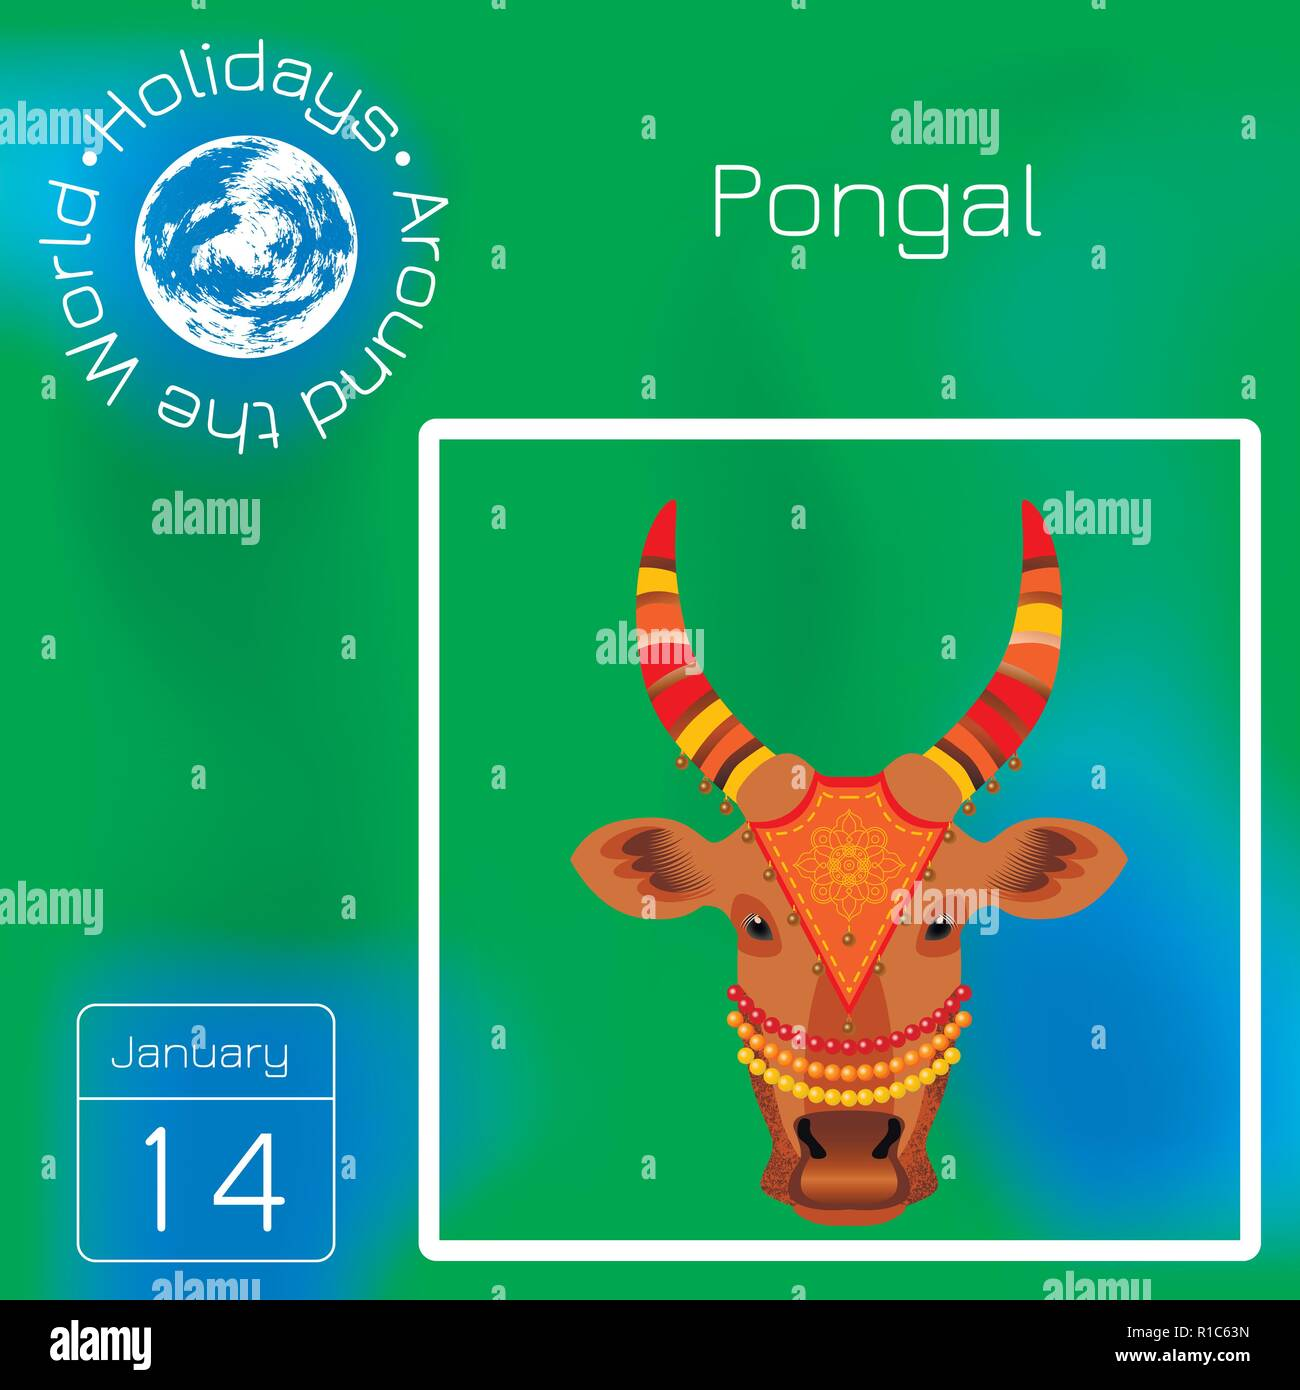 Atu Calendar.Maatu Pongal Hindu Harvest Festival In India And Sri Lanka The